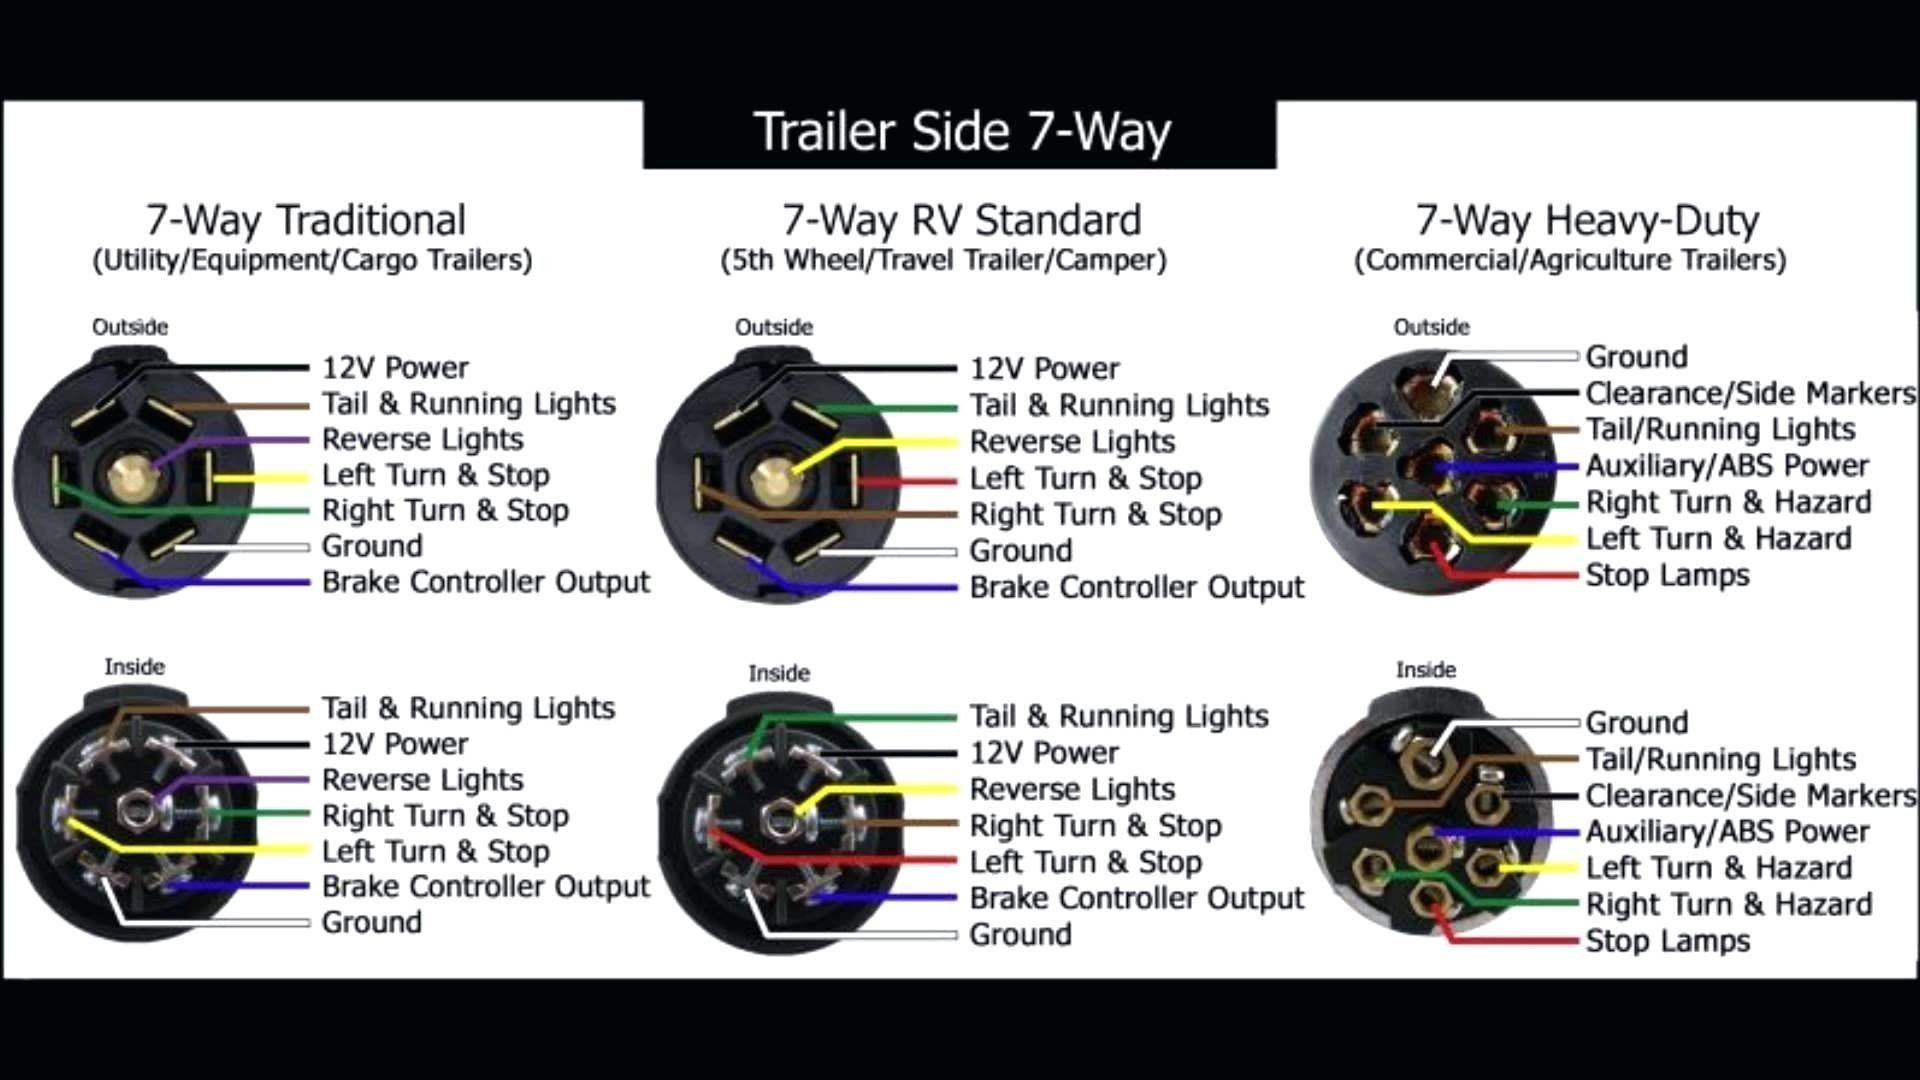 New Trailer Wiring Diagram Running Lights Diagram Diagramsample Diagramtemplate Wiringdiagram D Trailer Wiring Diagram Trailer Light Wiring Cargo Trailers